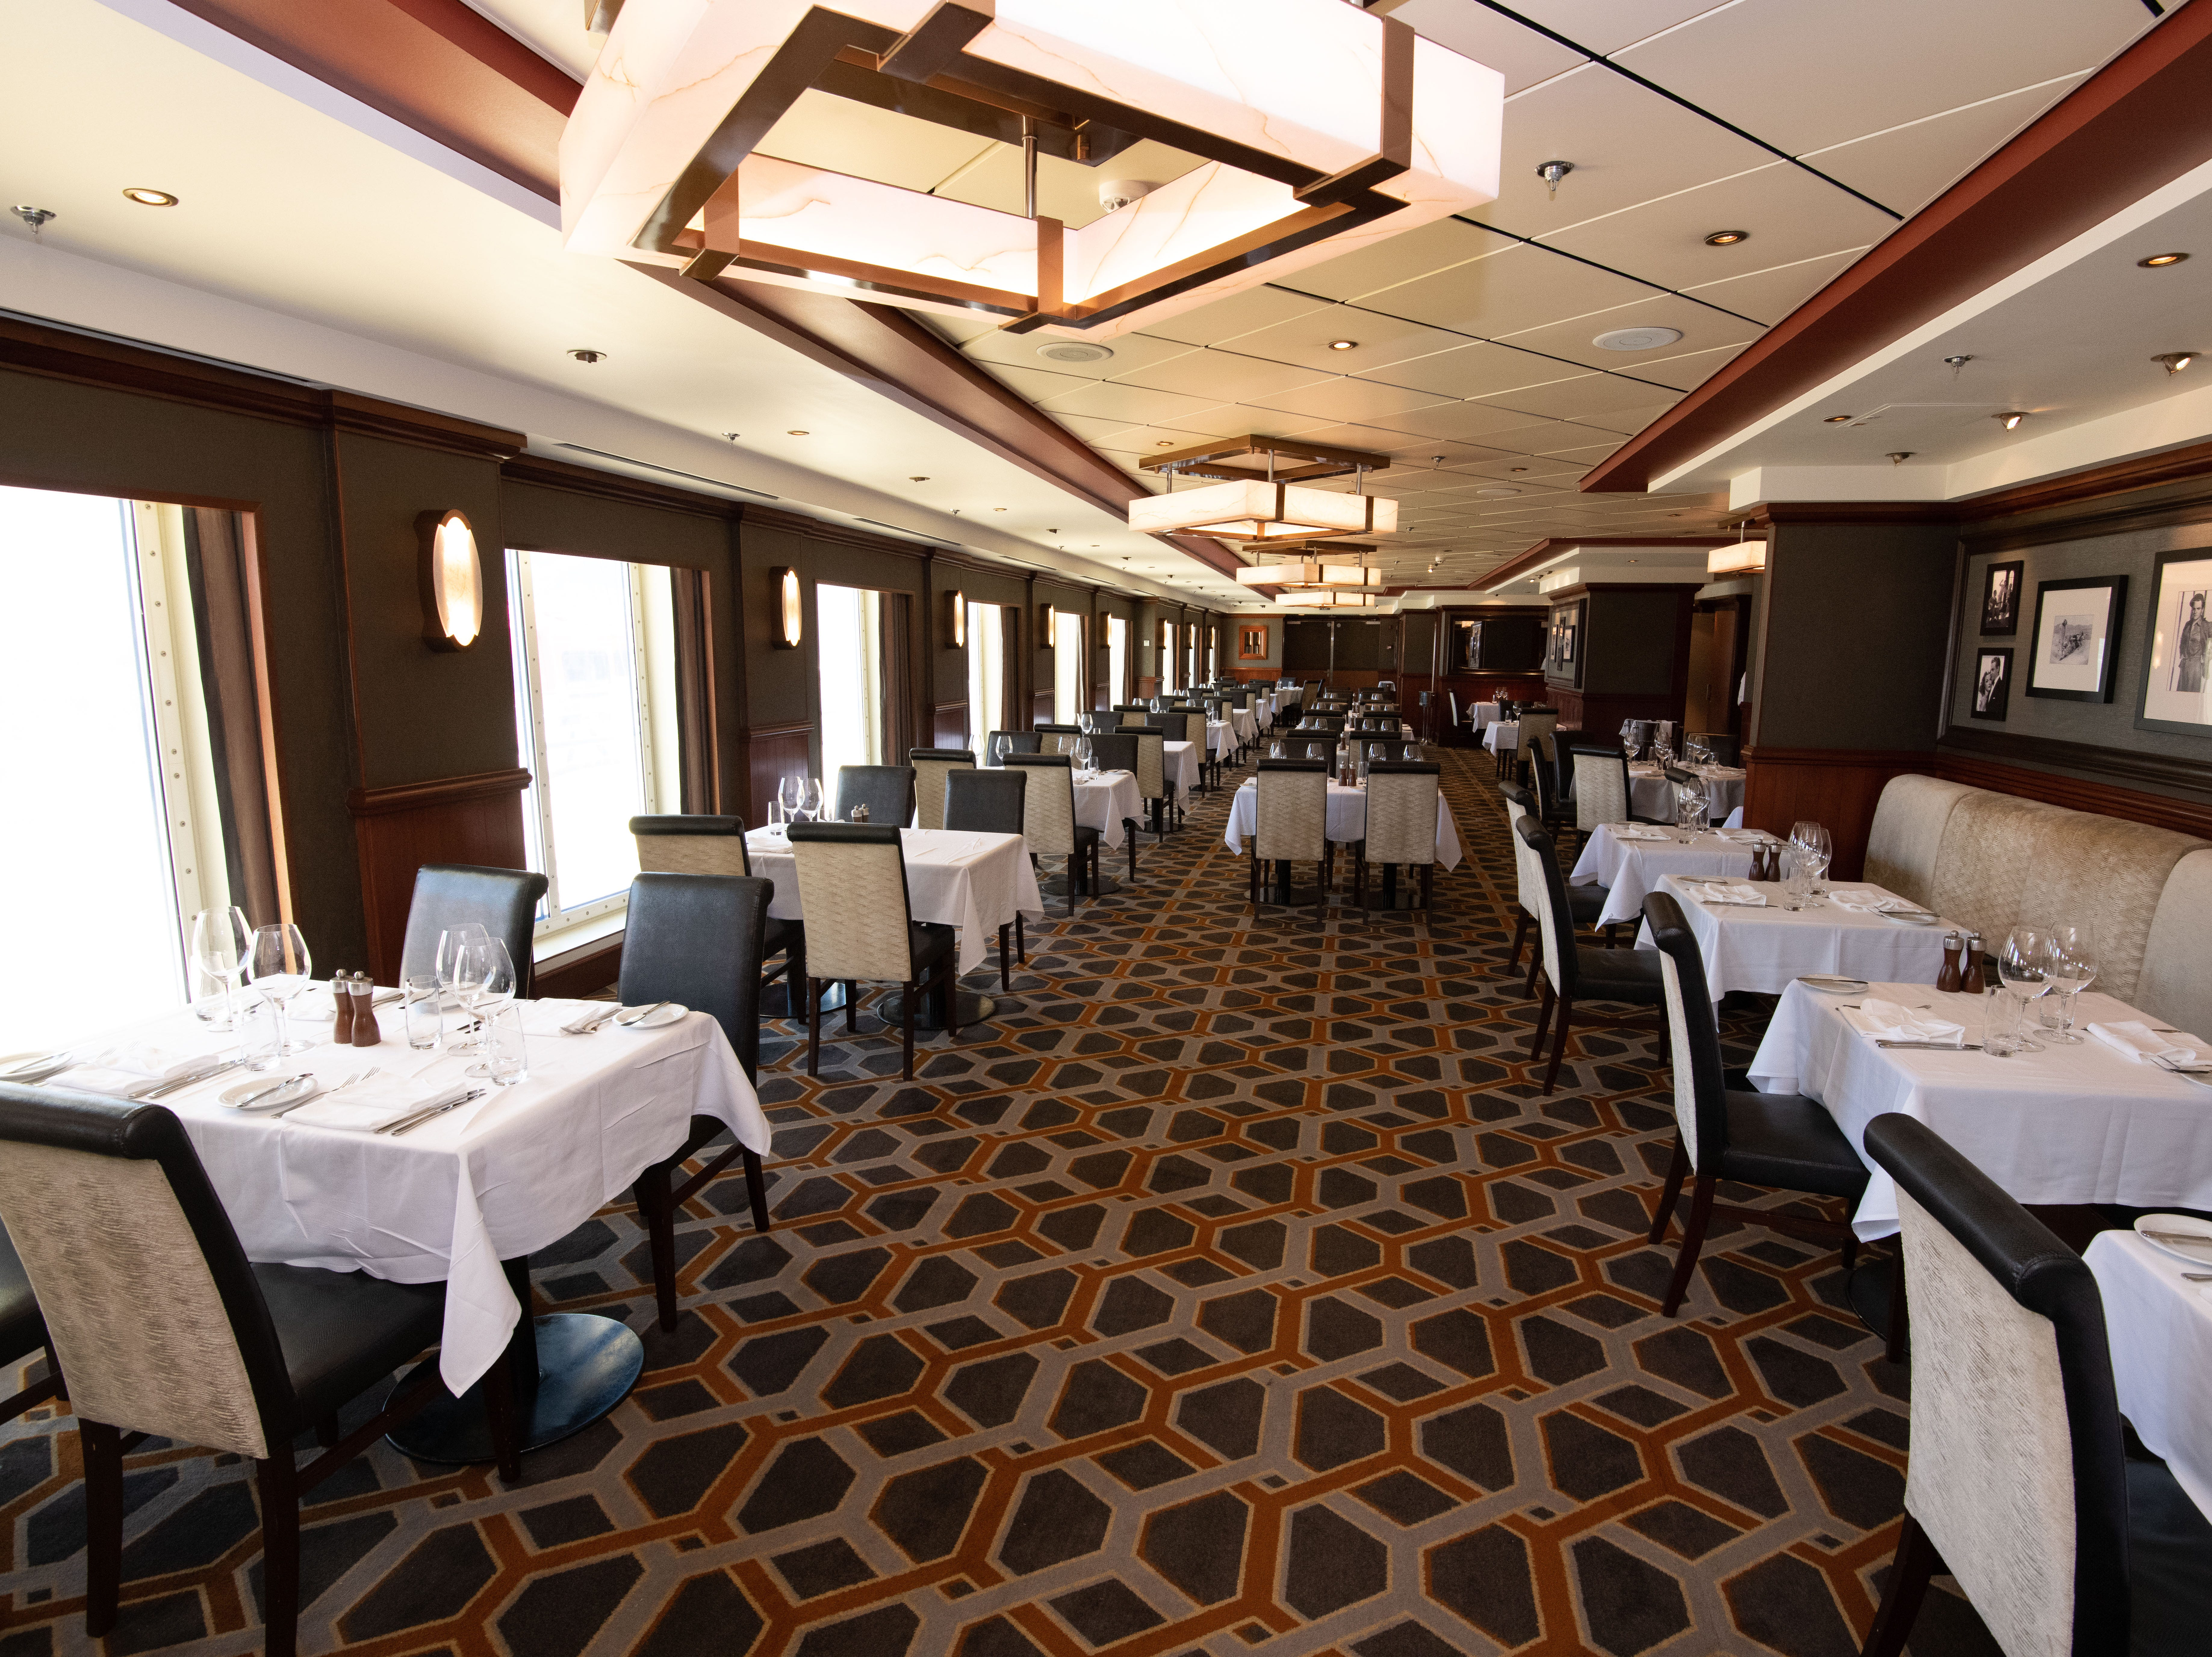 Cagney's is best known for ribeye, New York Strip and other steak cuts ranging in price from $16 to $20.